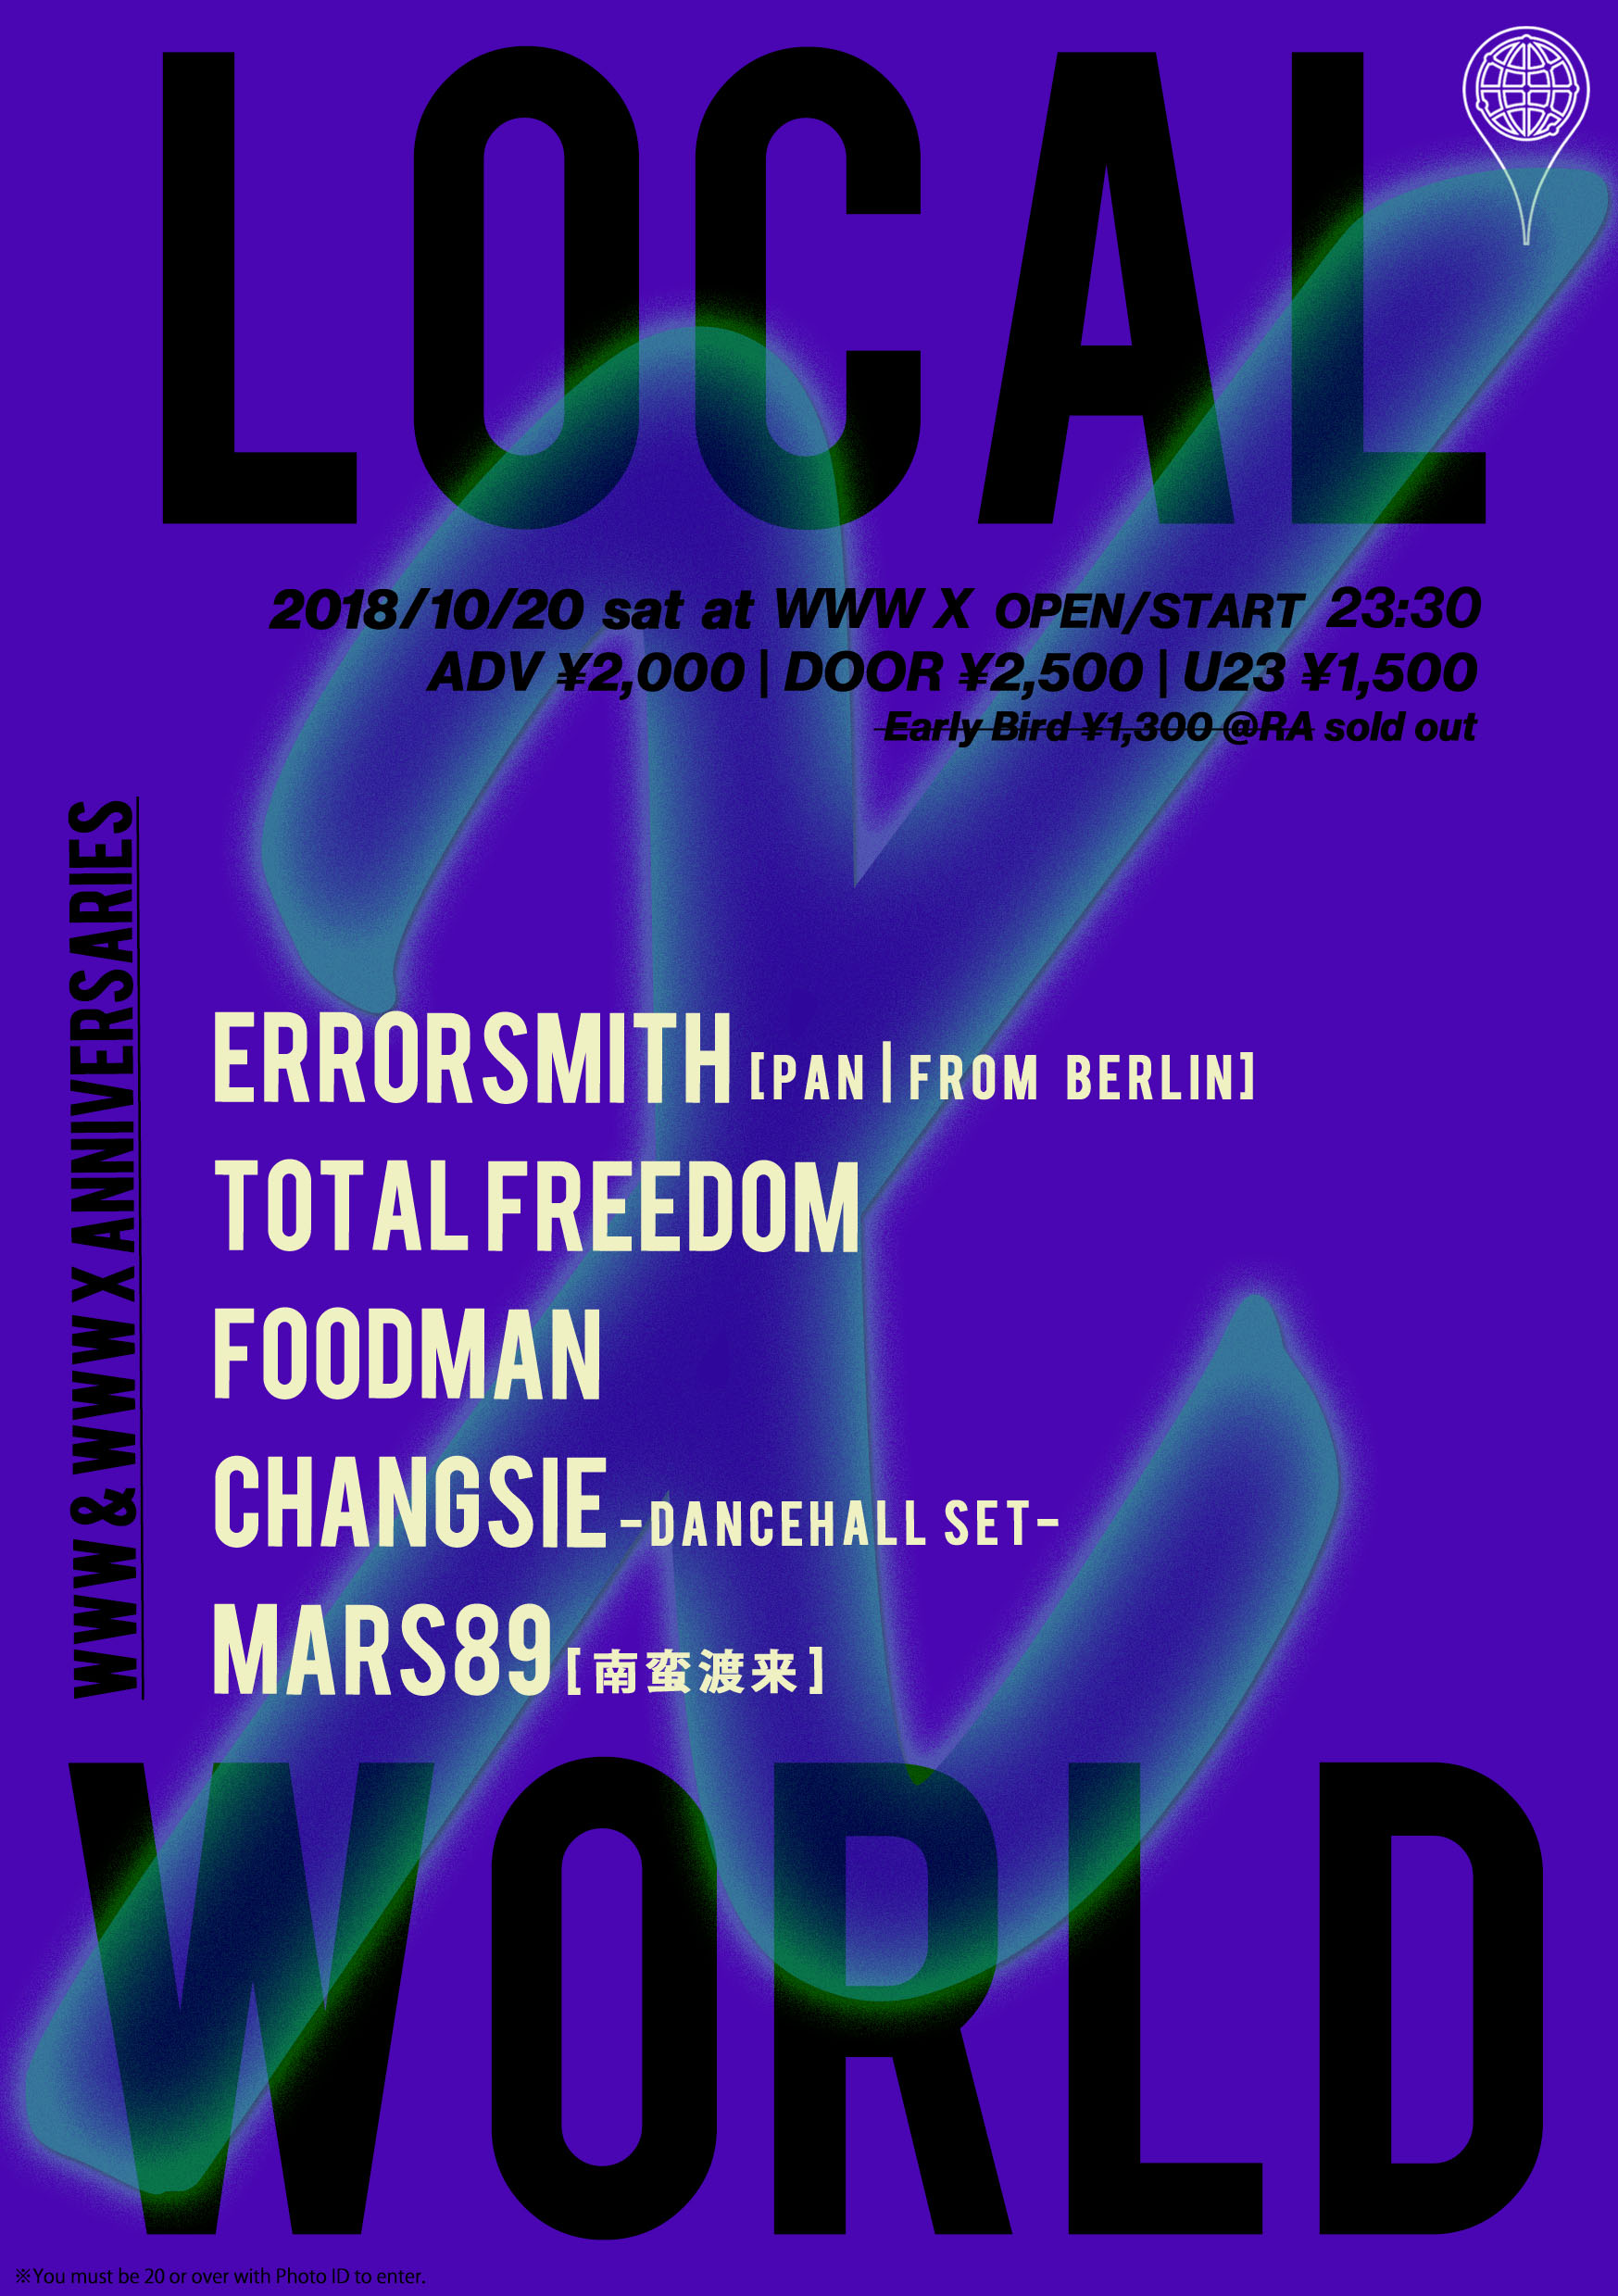 Local X World Errosmith _ Total Freedom